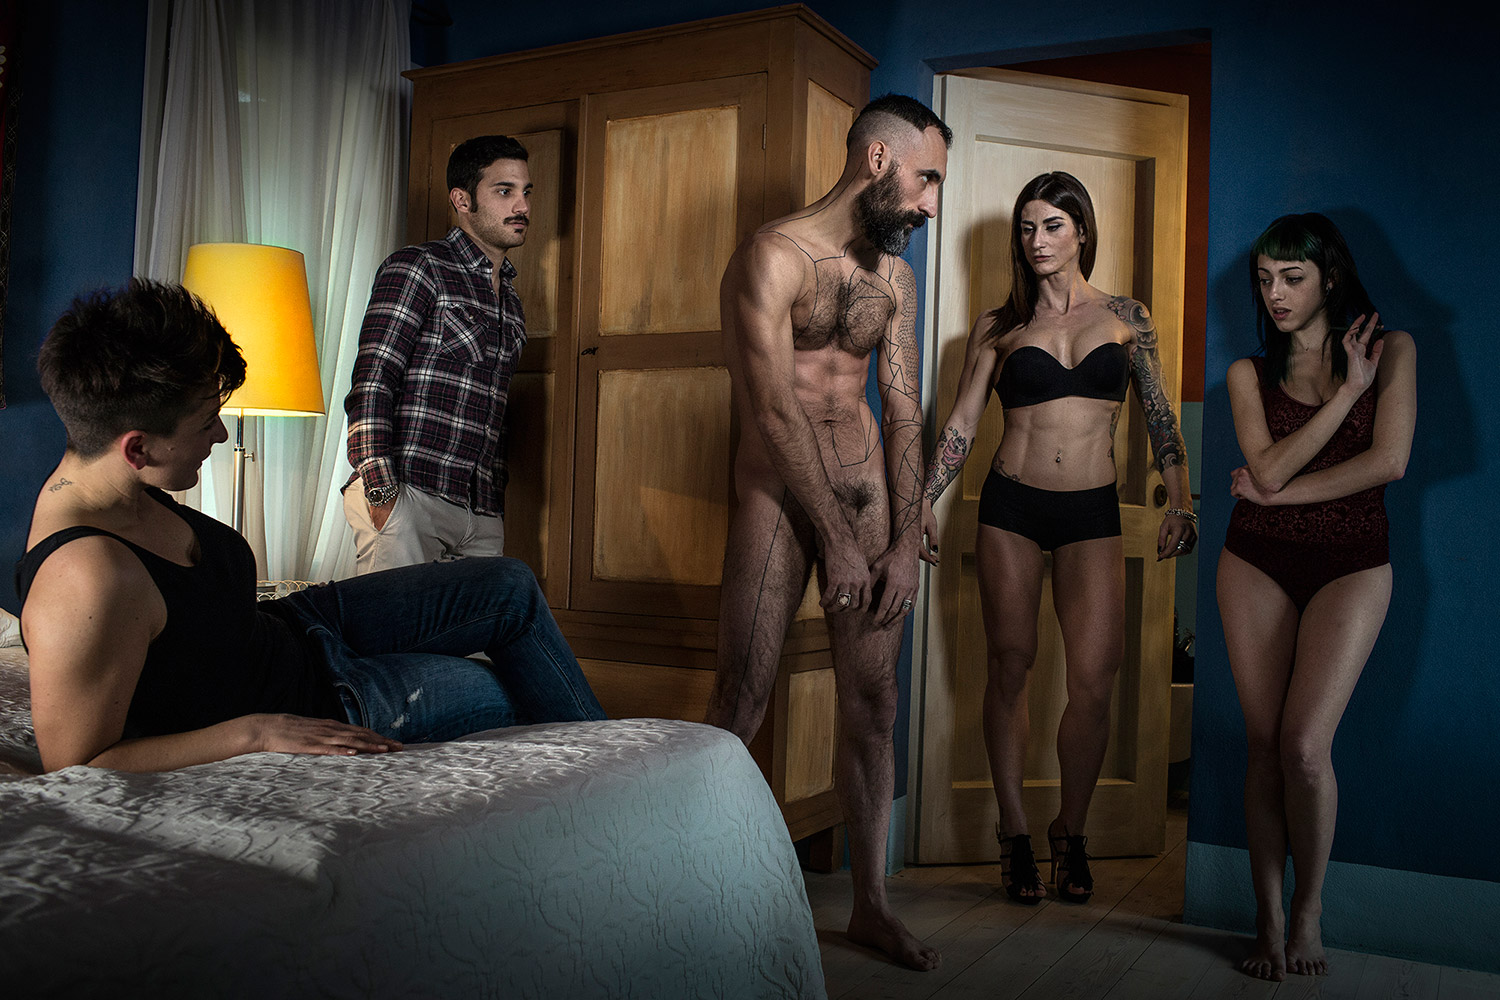 Marco Onofri, Followers - watching man and women stripped down in room